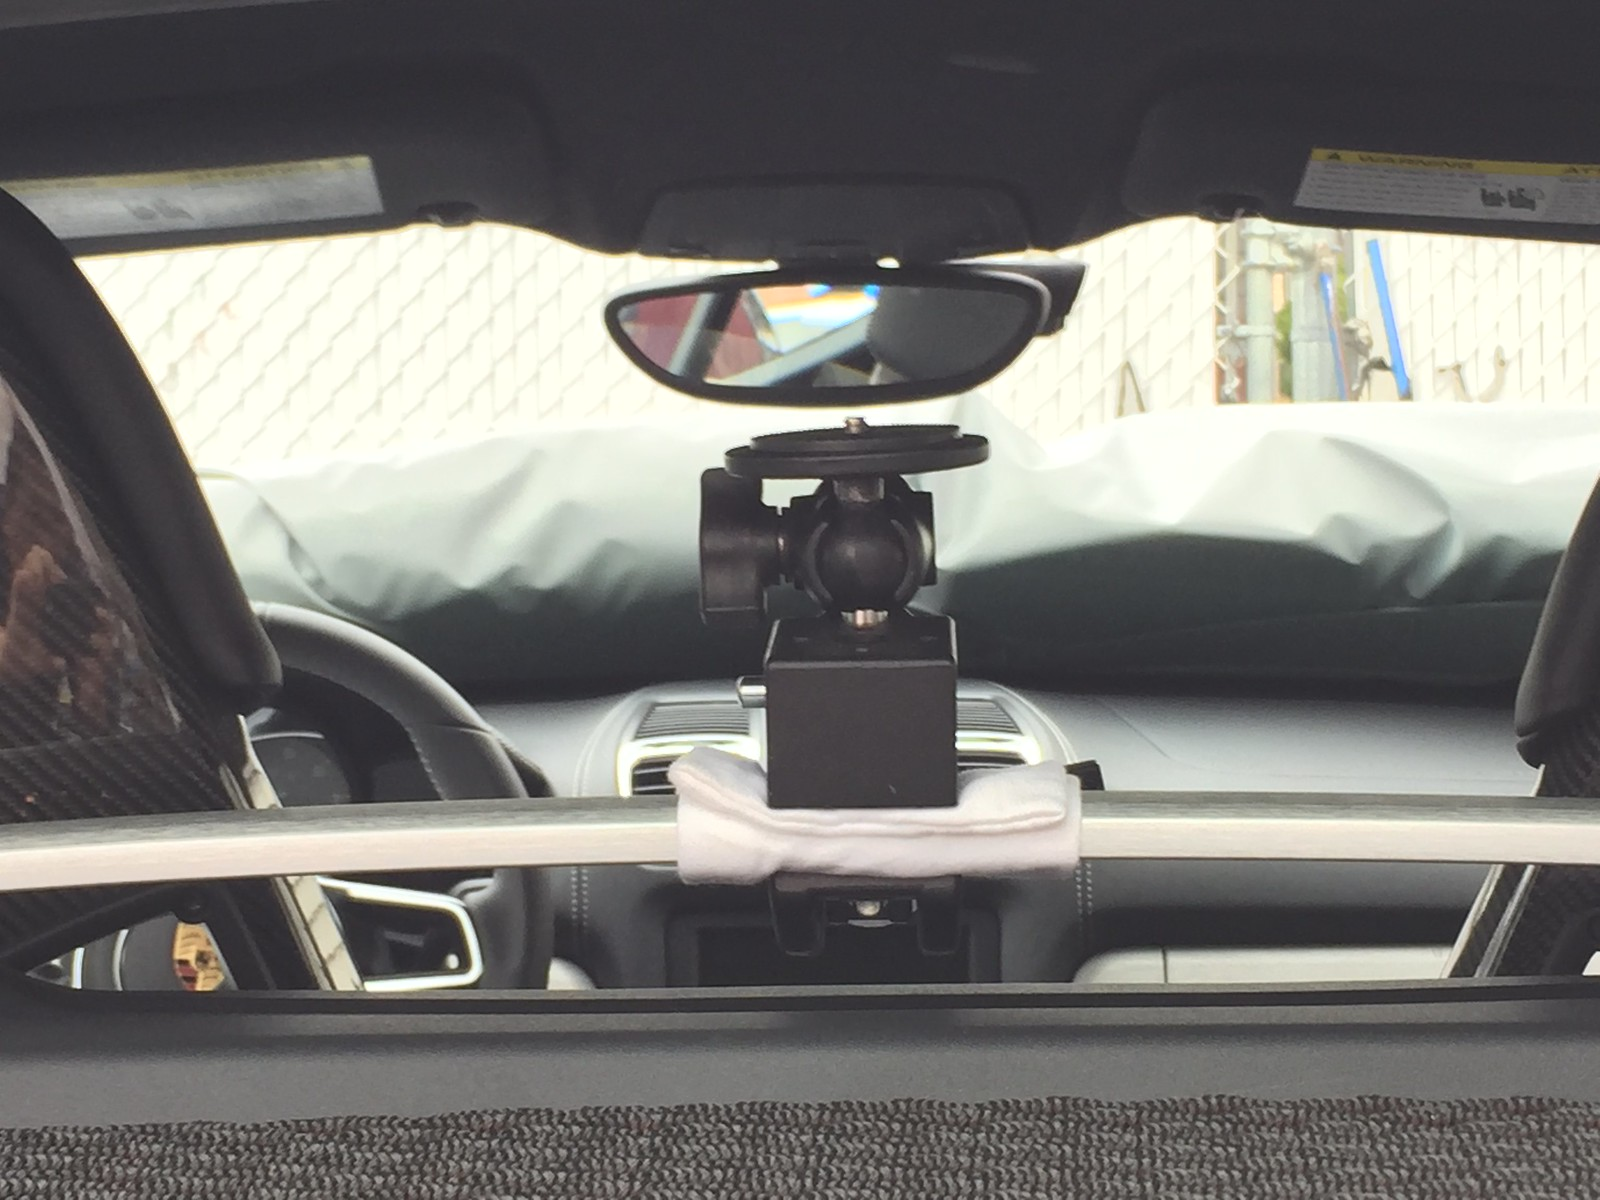 Camera Mount Solution On The Luggage Bar Rennlist